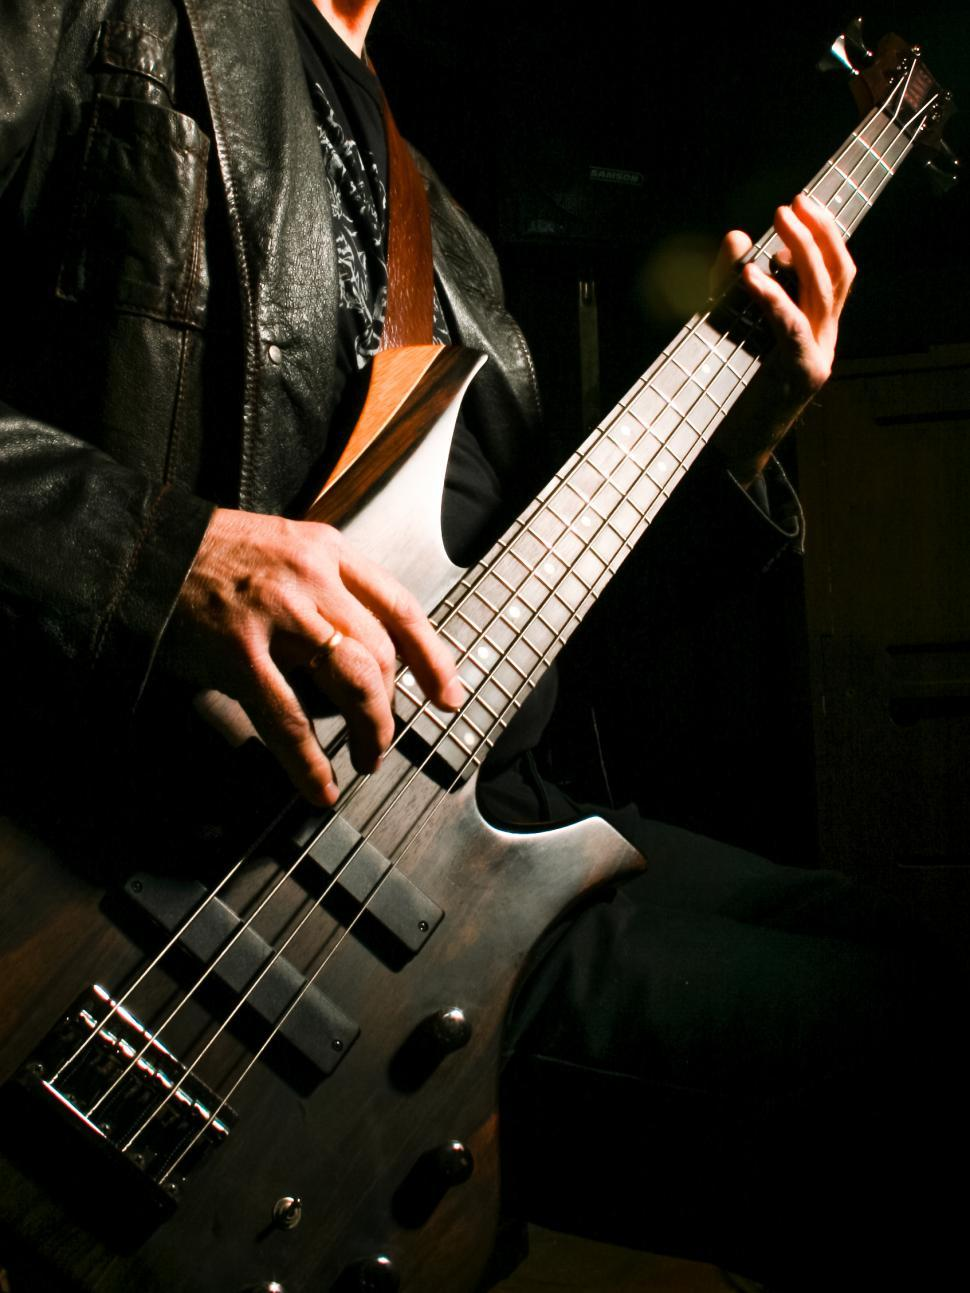 Download Free Stock HD Photo of man playing electric guitar Online